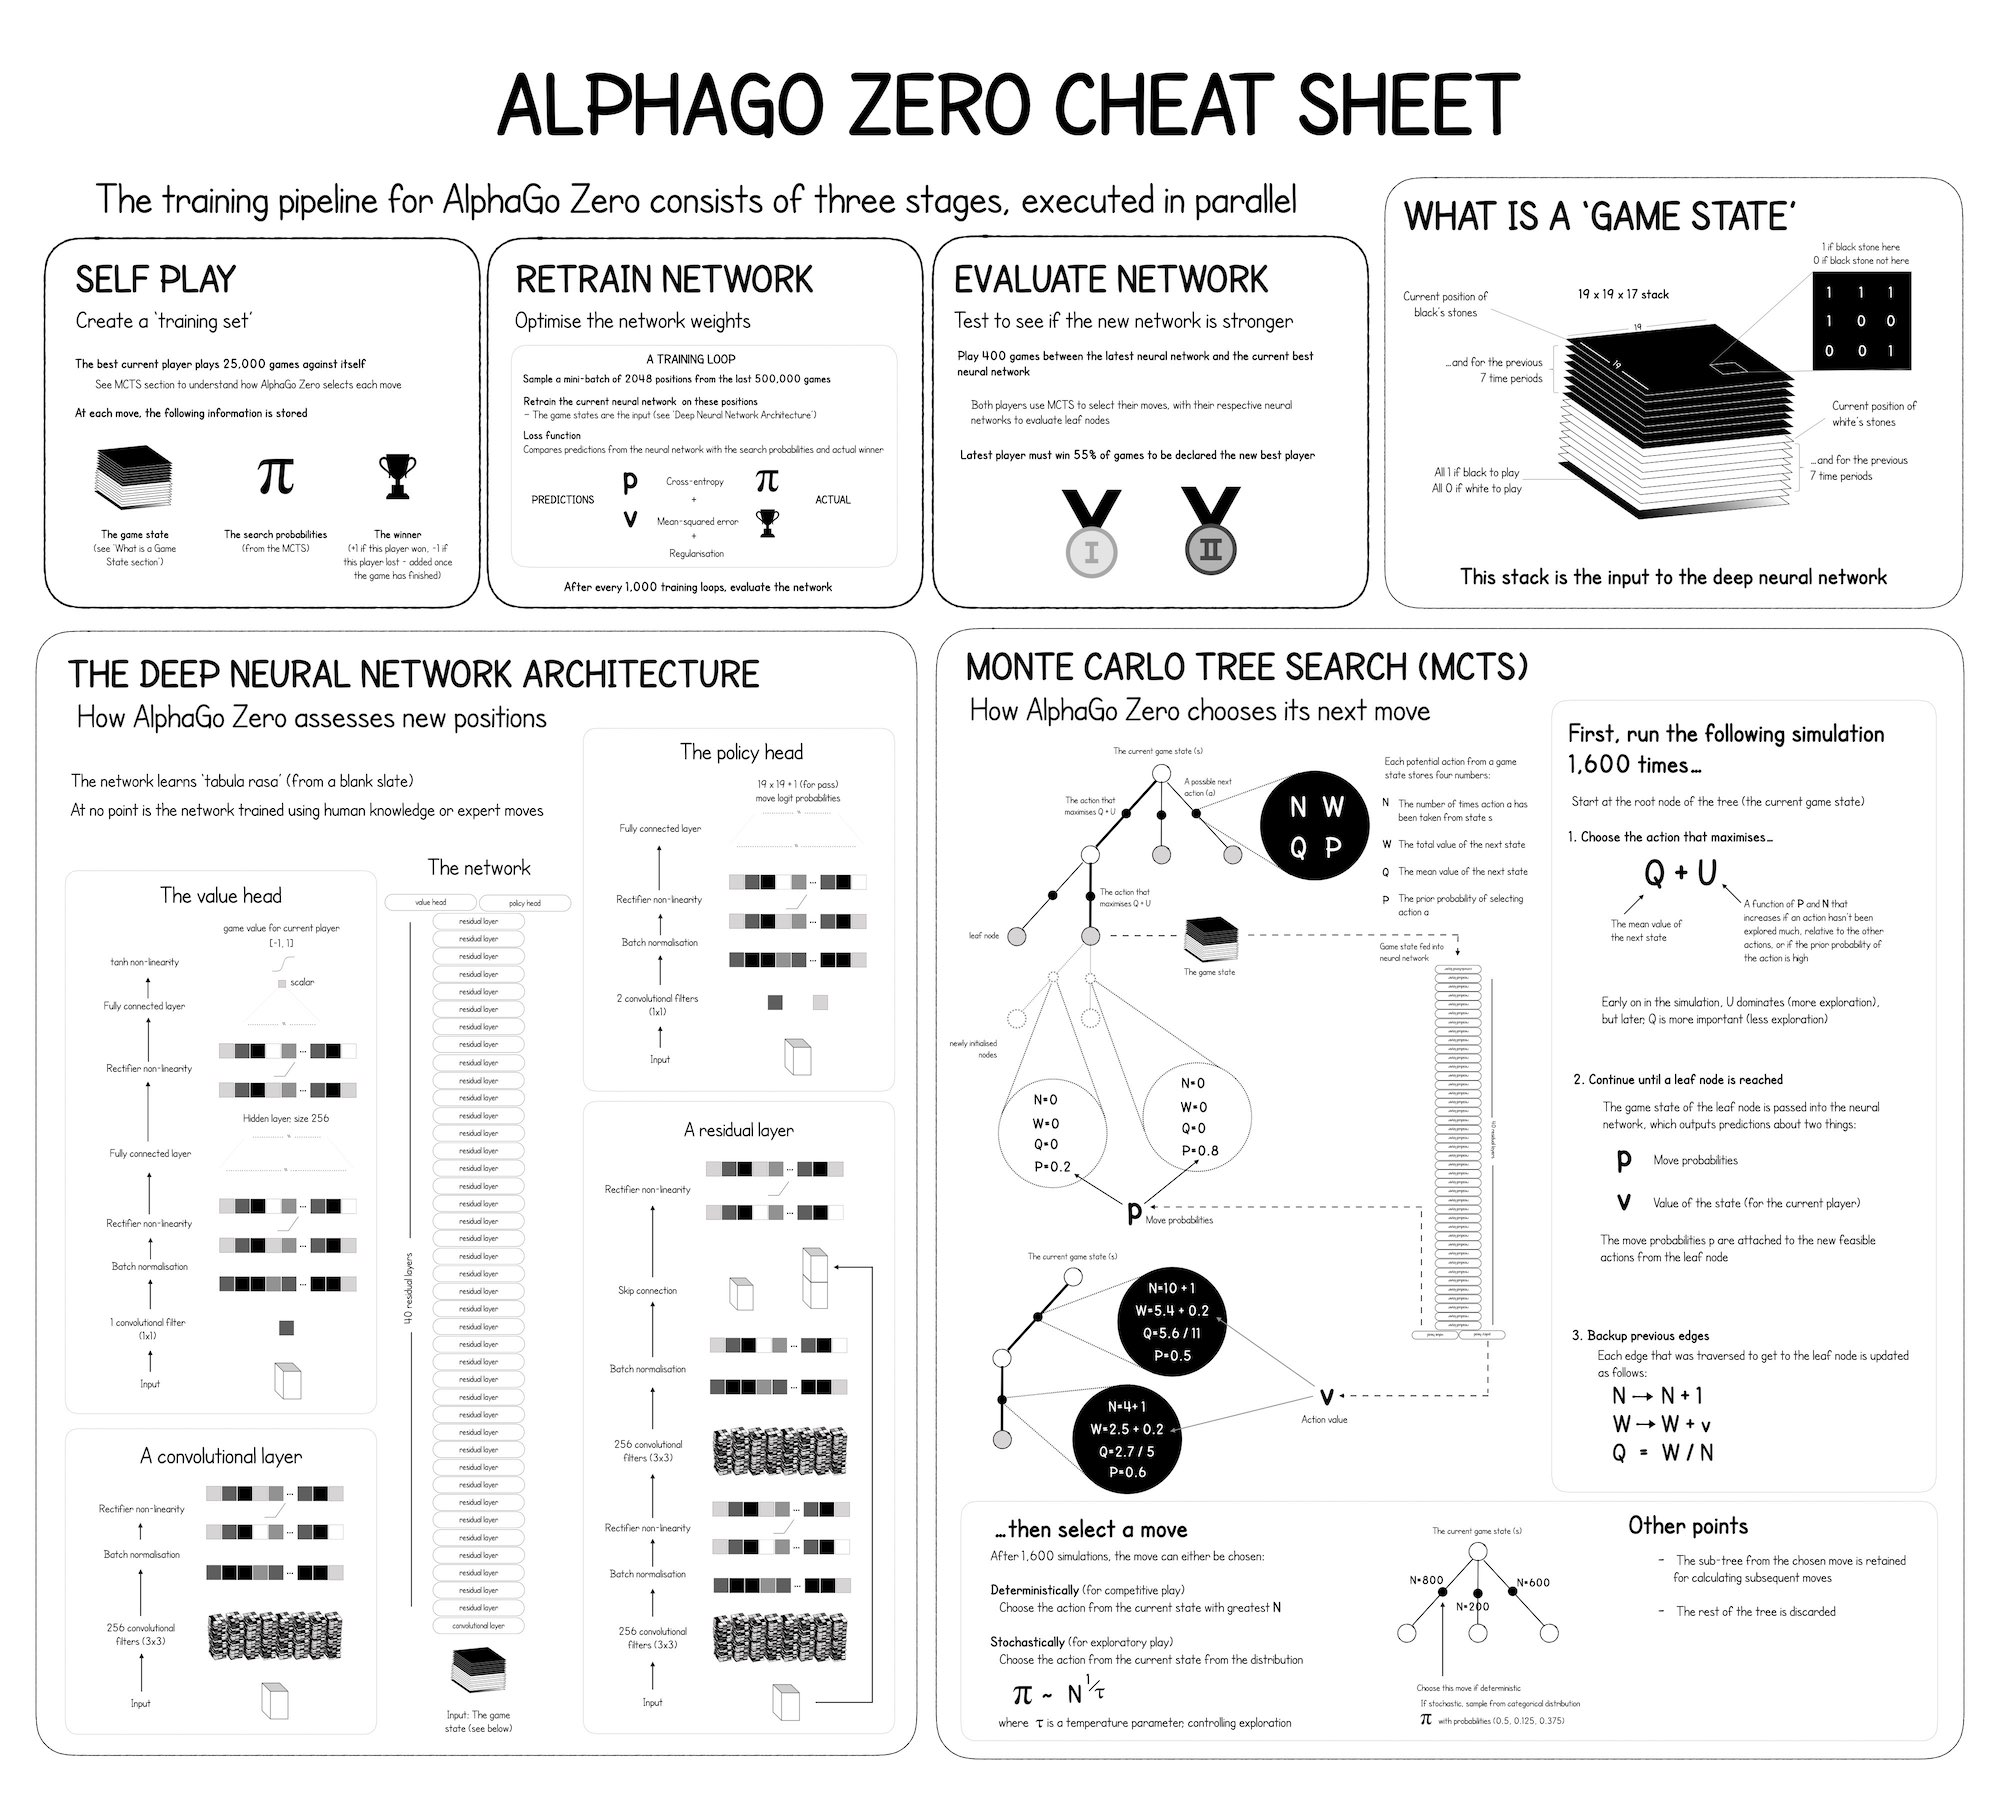 AlphaGo Zero Cheat Sheet